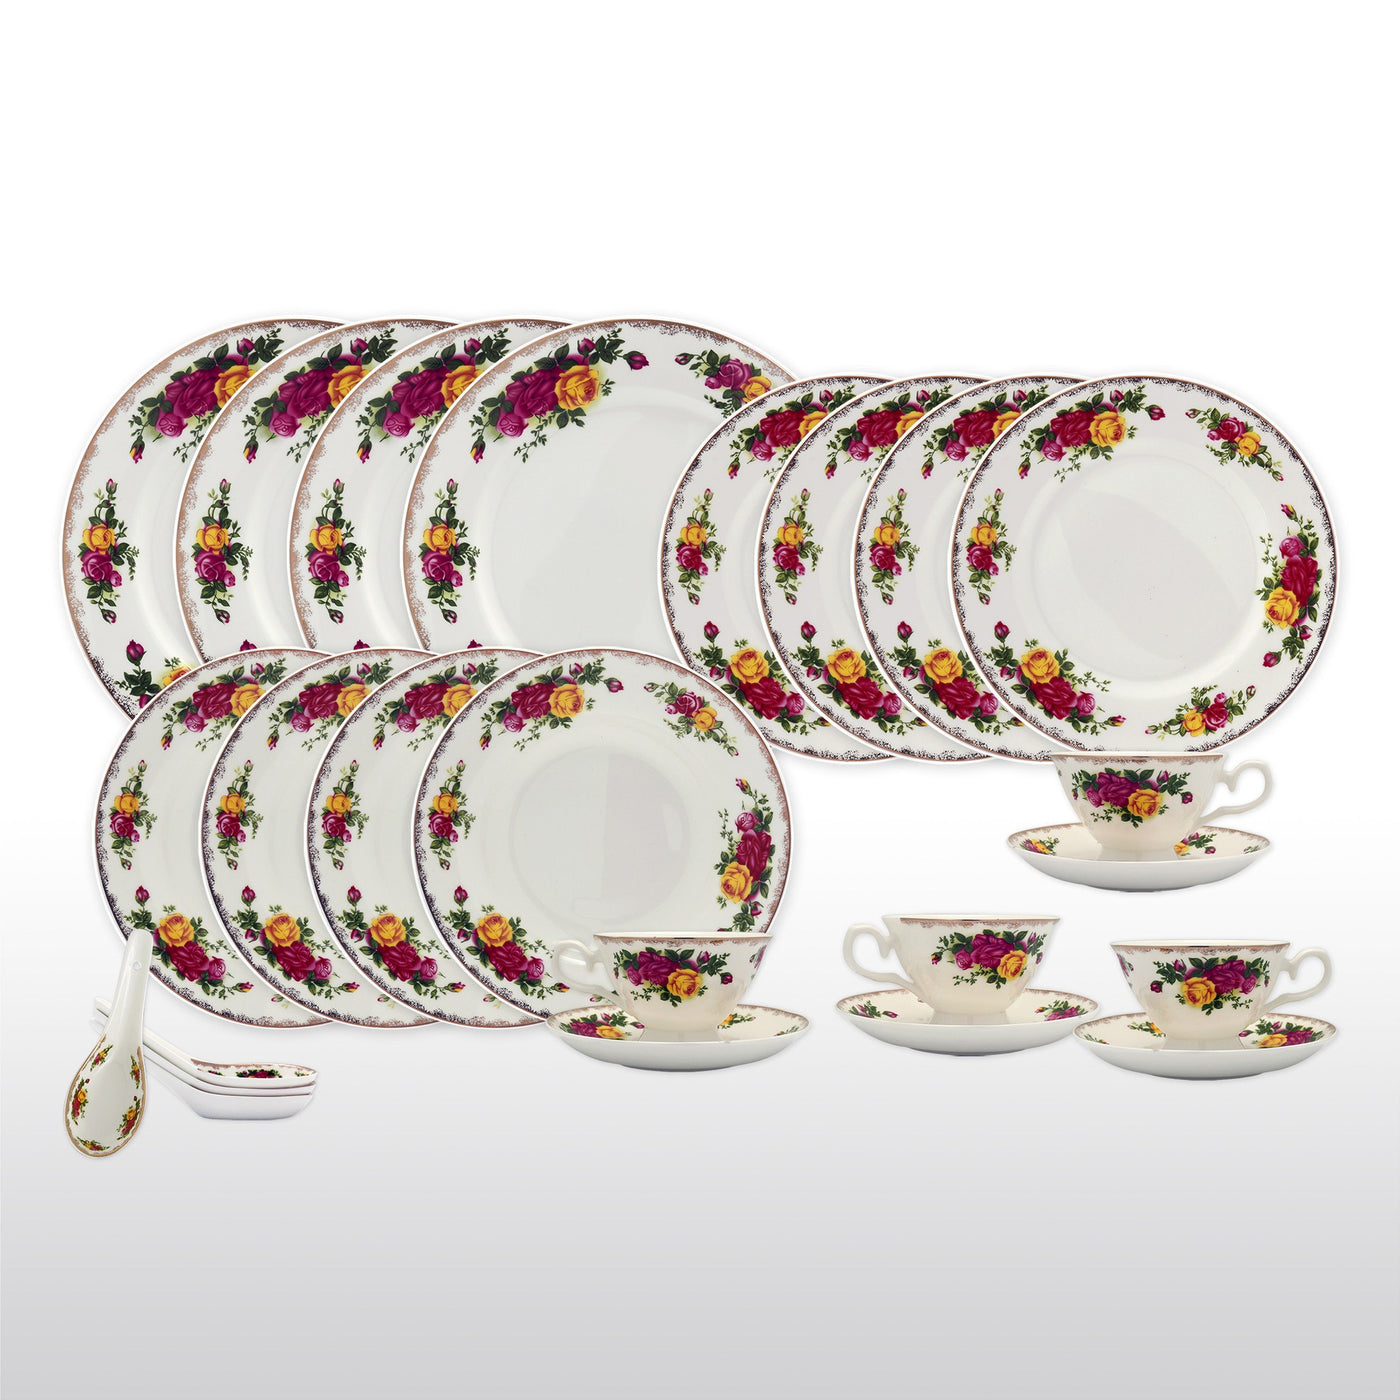 Dinnerwares Featured Products - Bone China 24 Piece Dinnerware Set English Rose Designs Service ...  sc 1 st  Homenique.net & Fine Bone China Dinnerware Set - 24 Pieces - Service for 4 ...